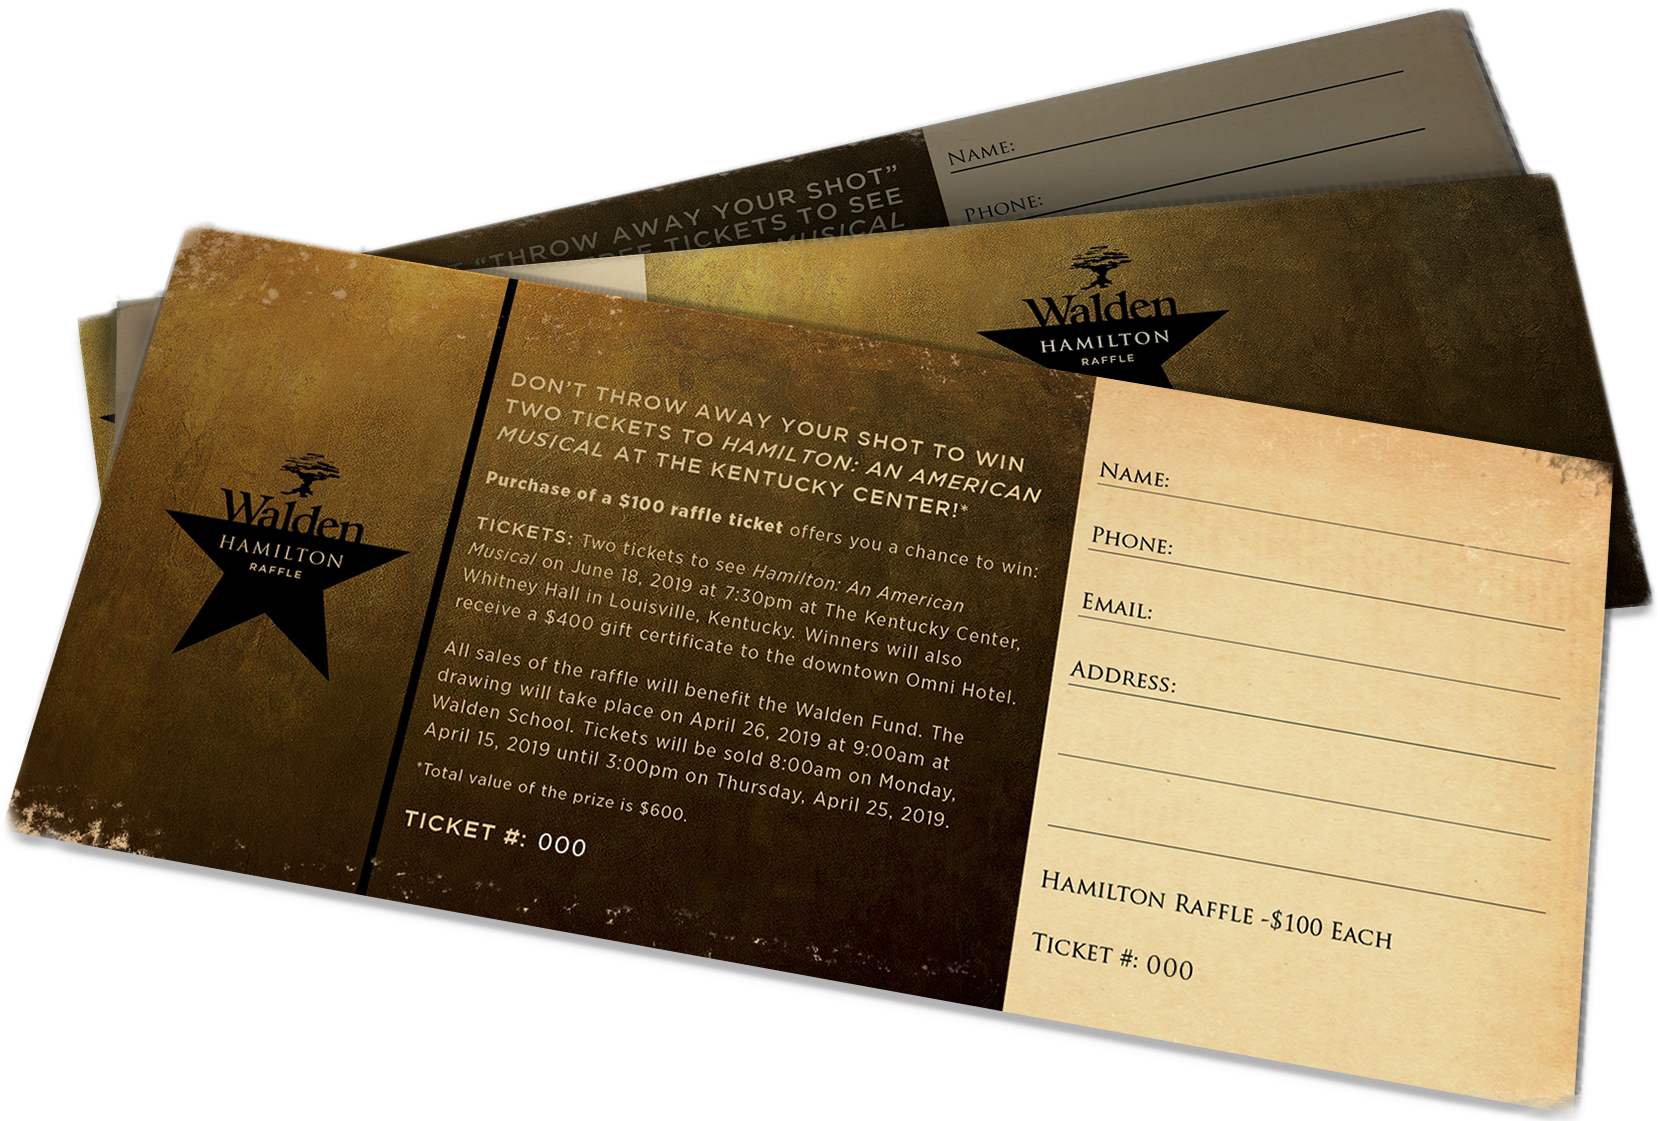 Ticket-mockup_Hamilton_2019_transparent background.png